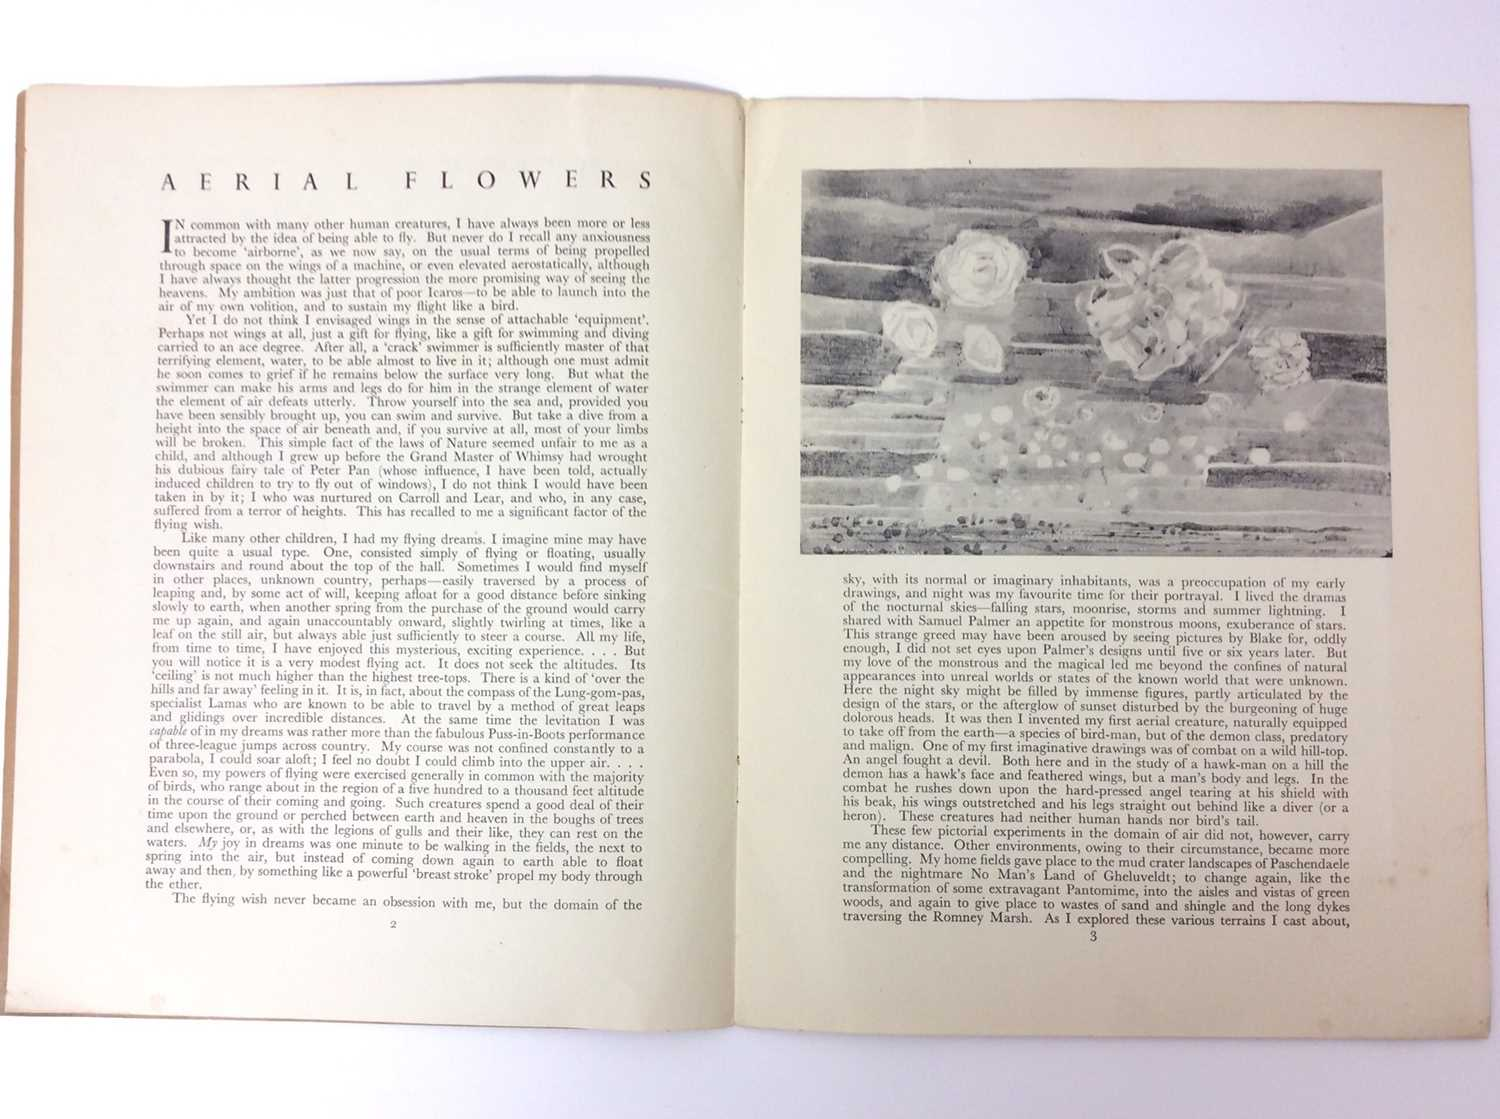 Paul Nash, Monster Field, limited to an edition of 1000, together with Aerial Flowers - Image 8 of 11